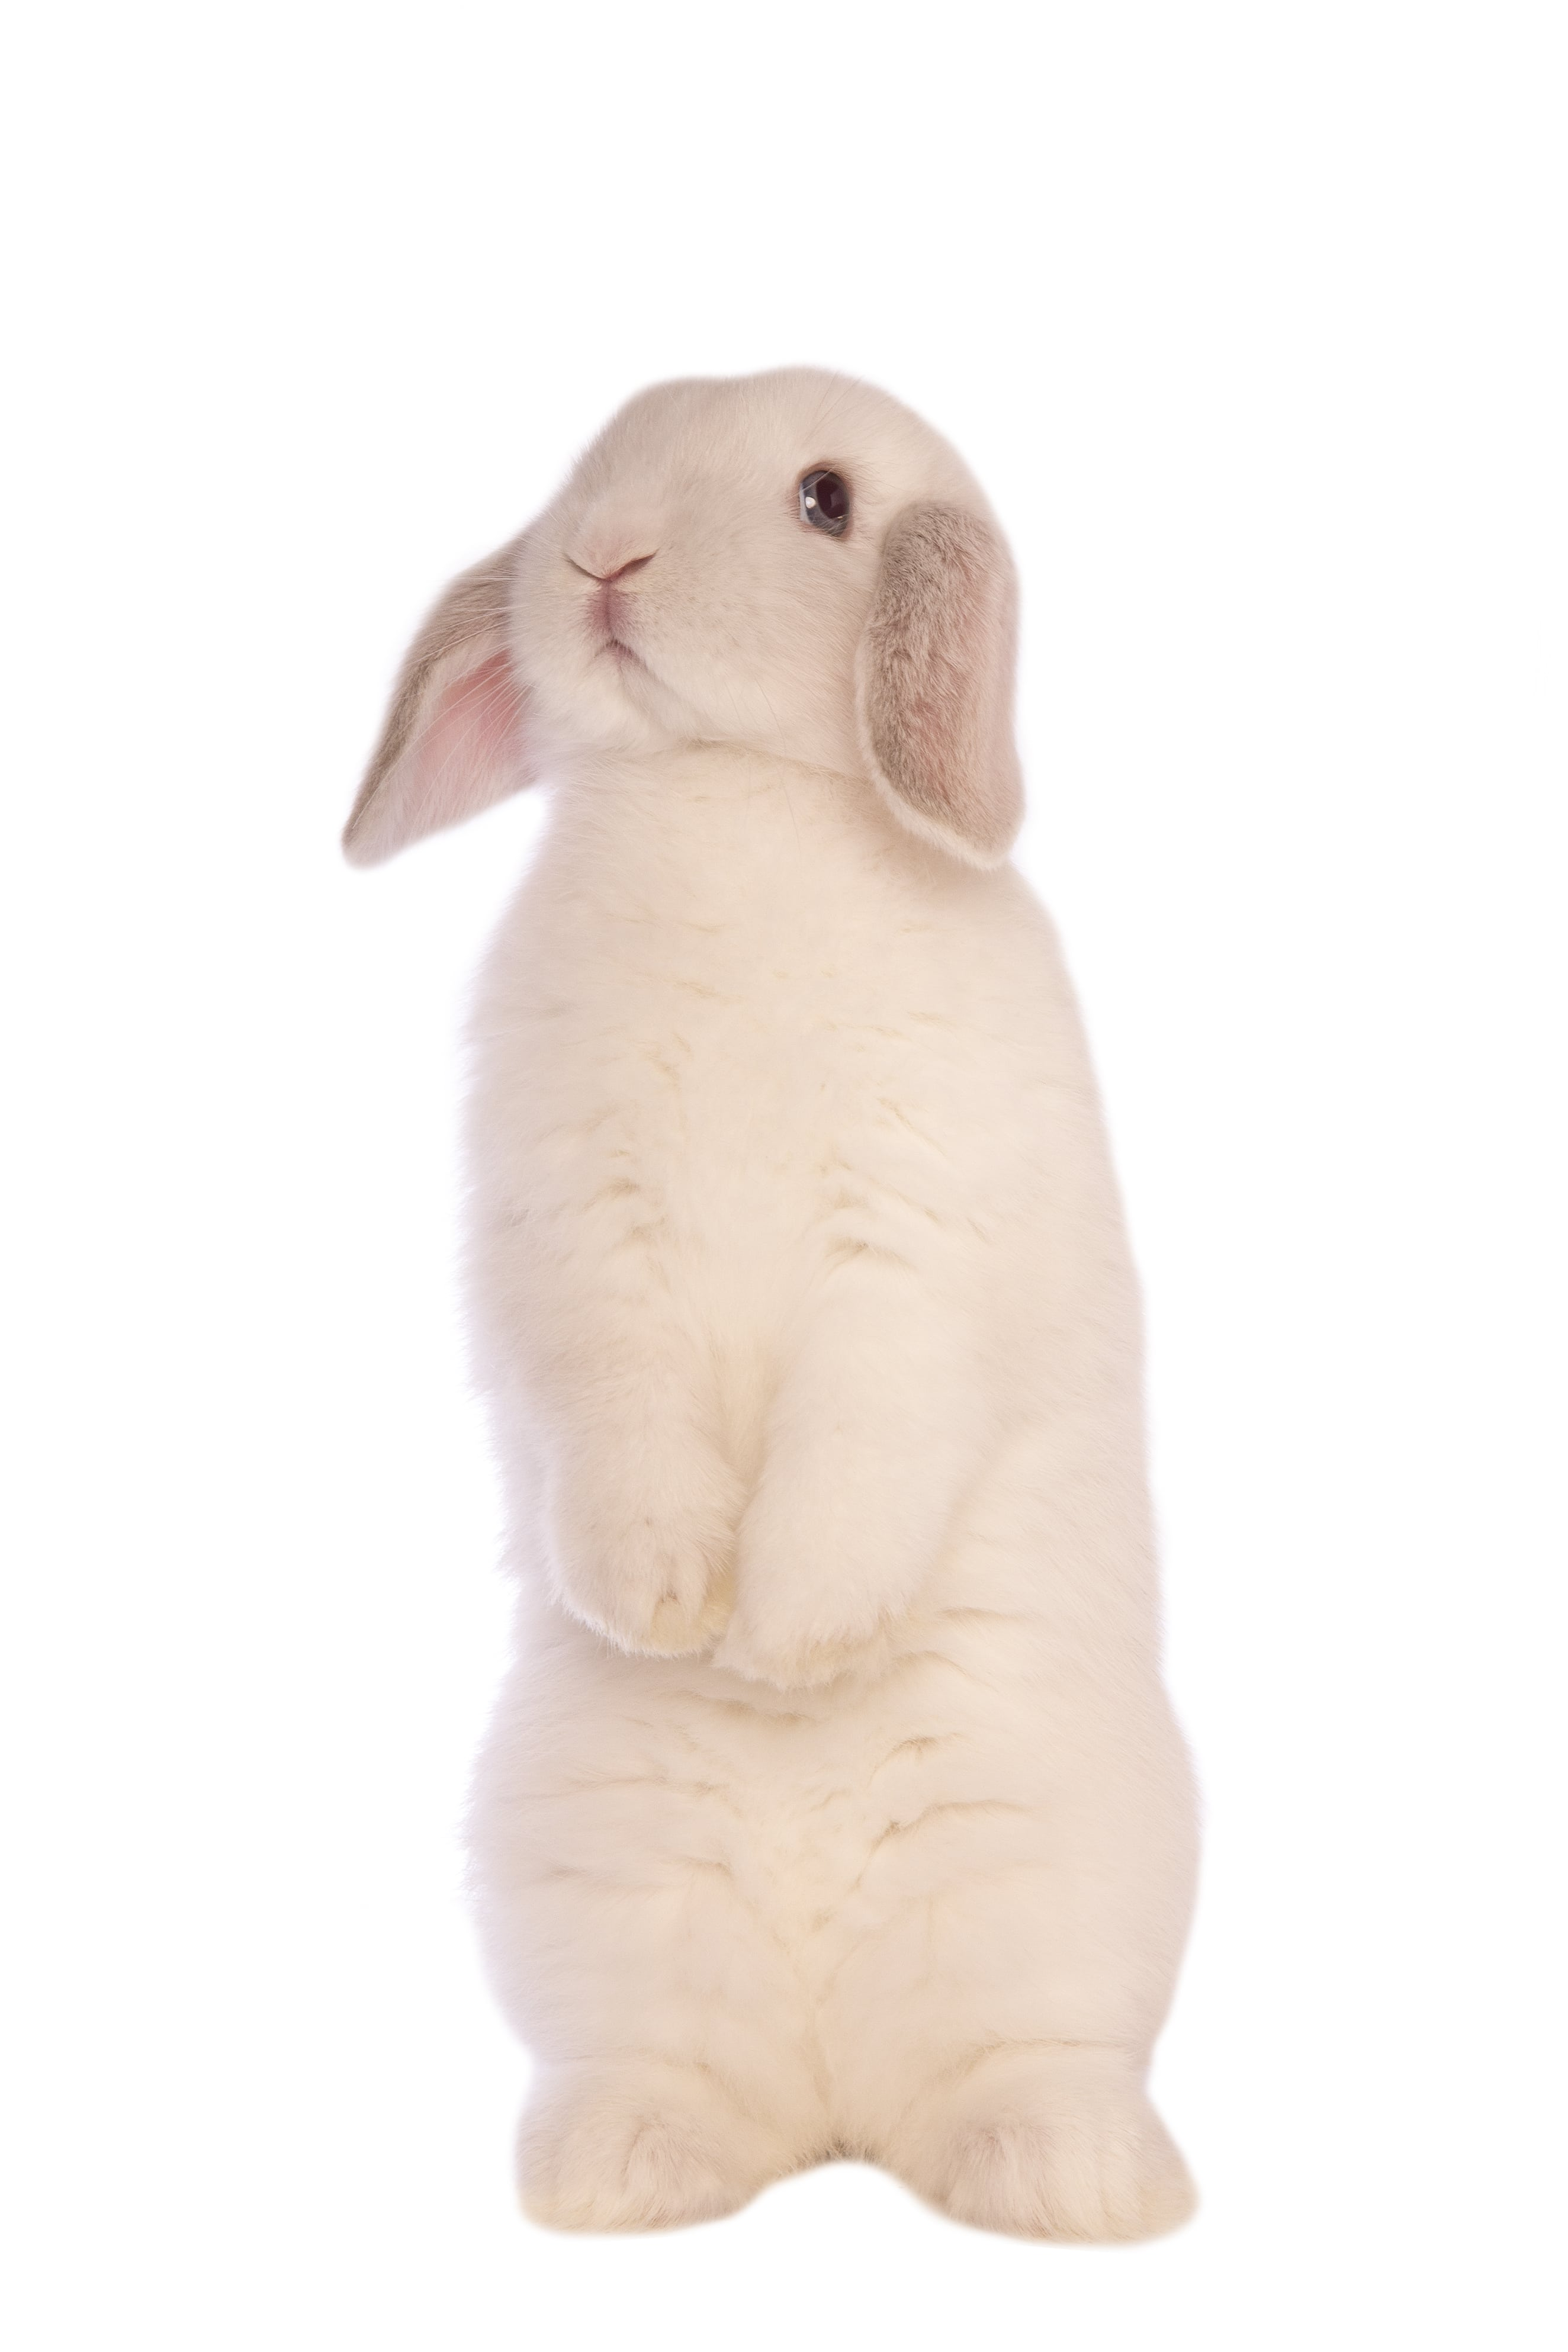 A cute white bunny keeping an eye any questions sent about our rabbit & guinea pig hotel